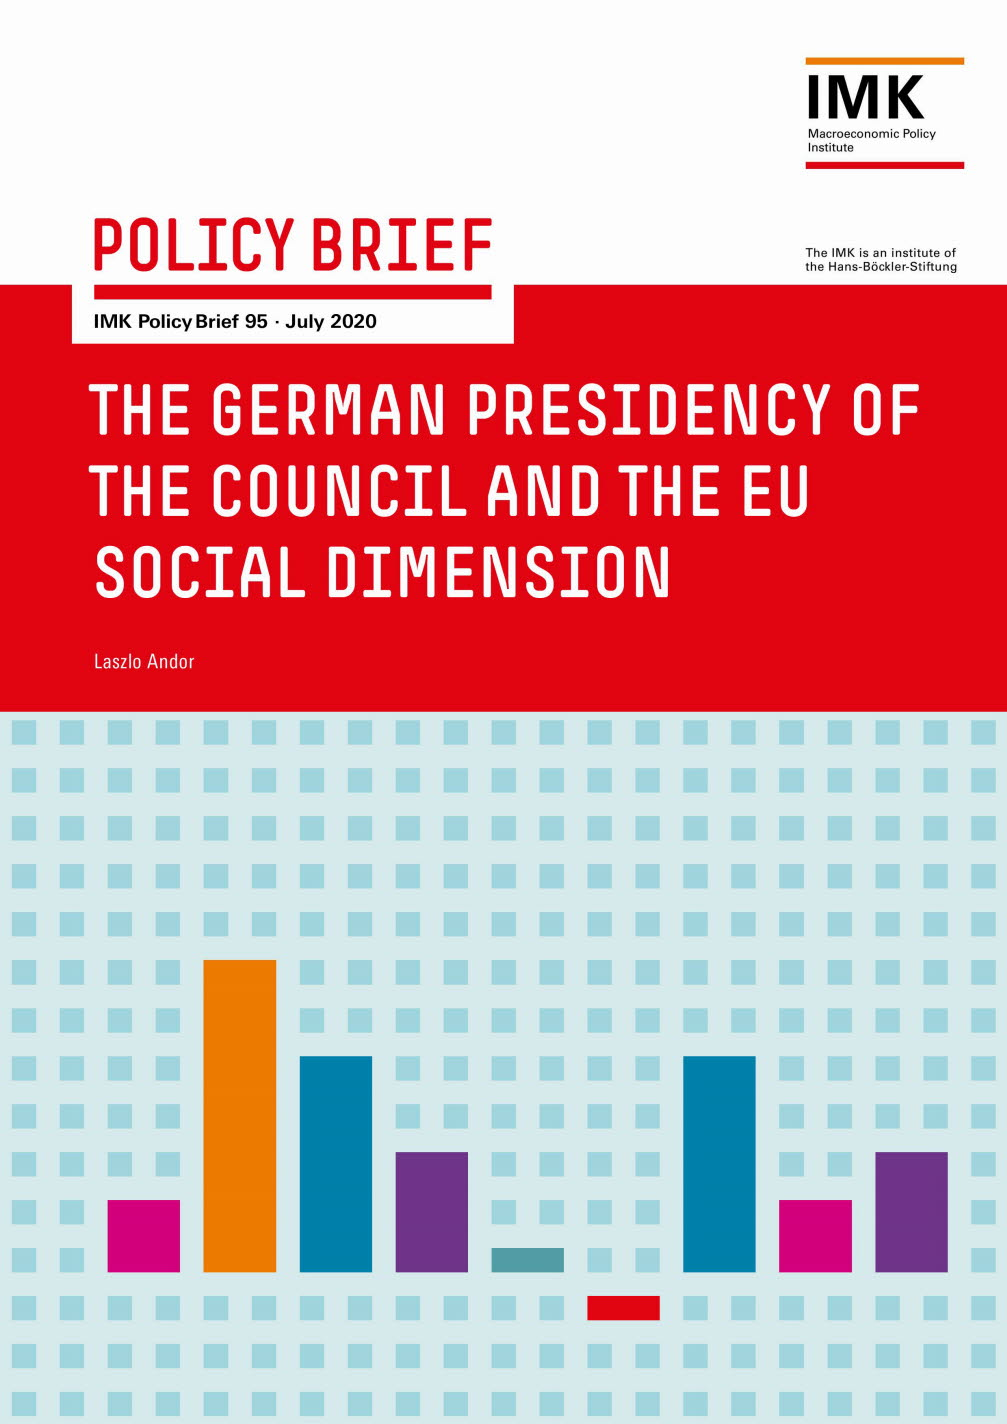 The German presidency of the council and the EU social dimension